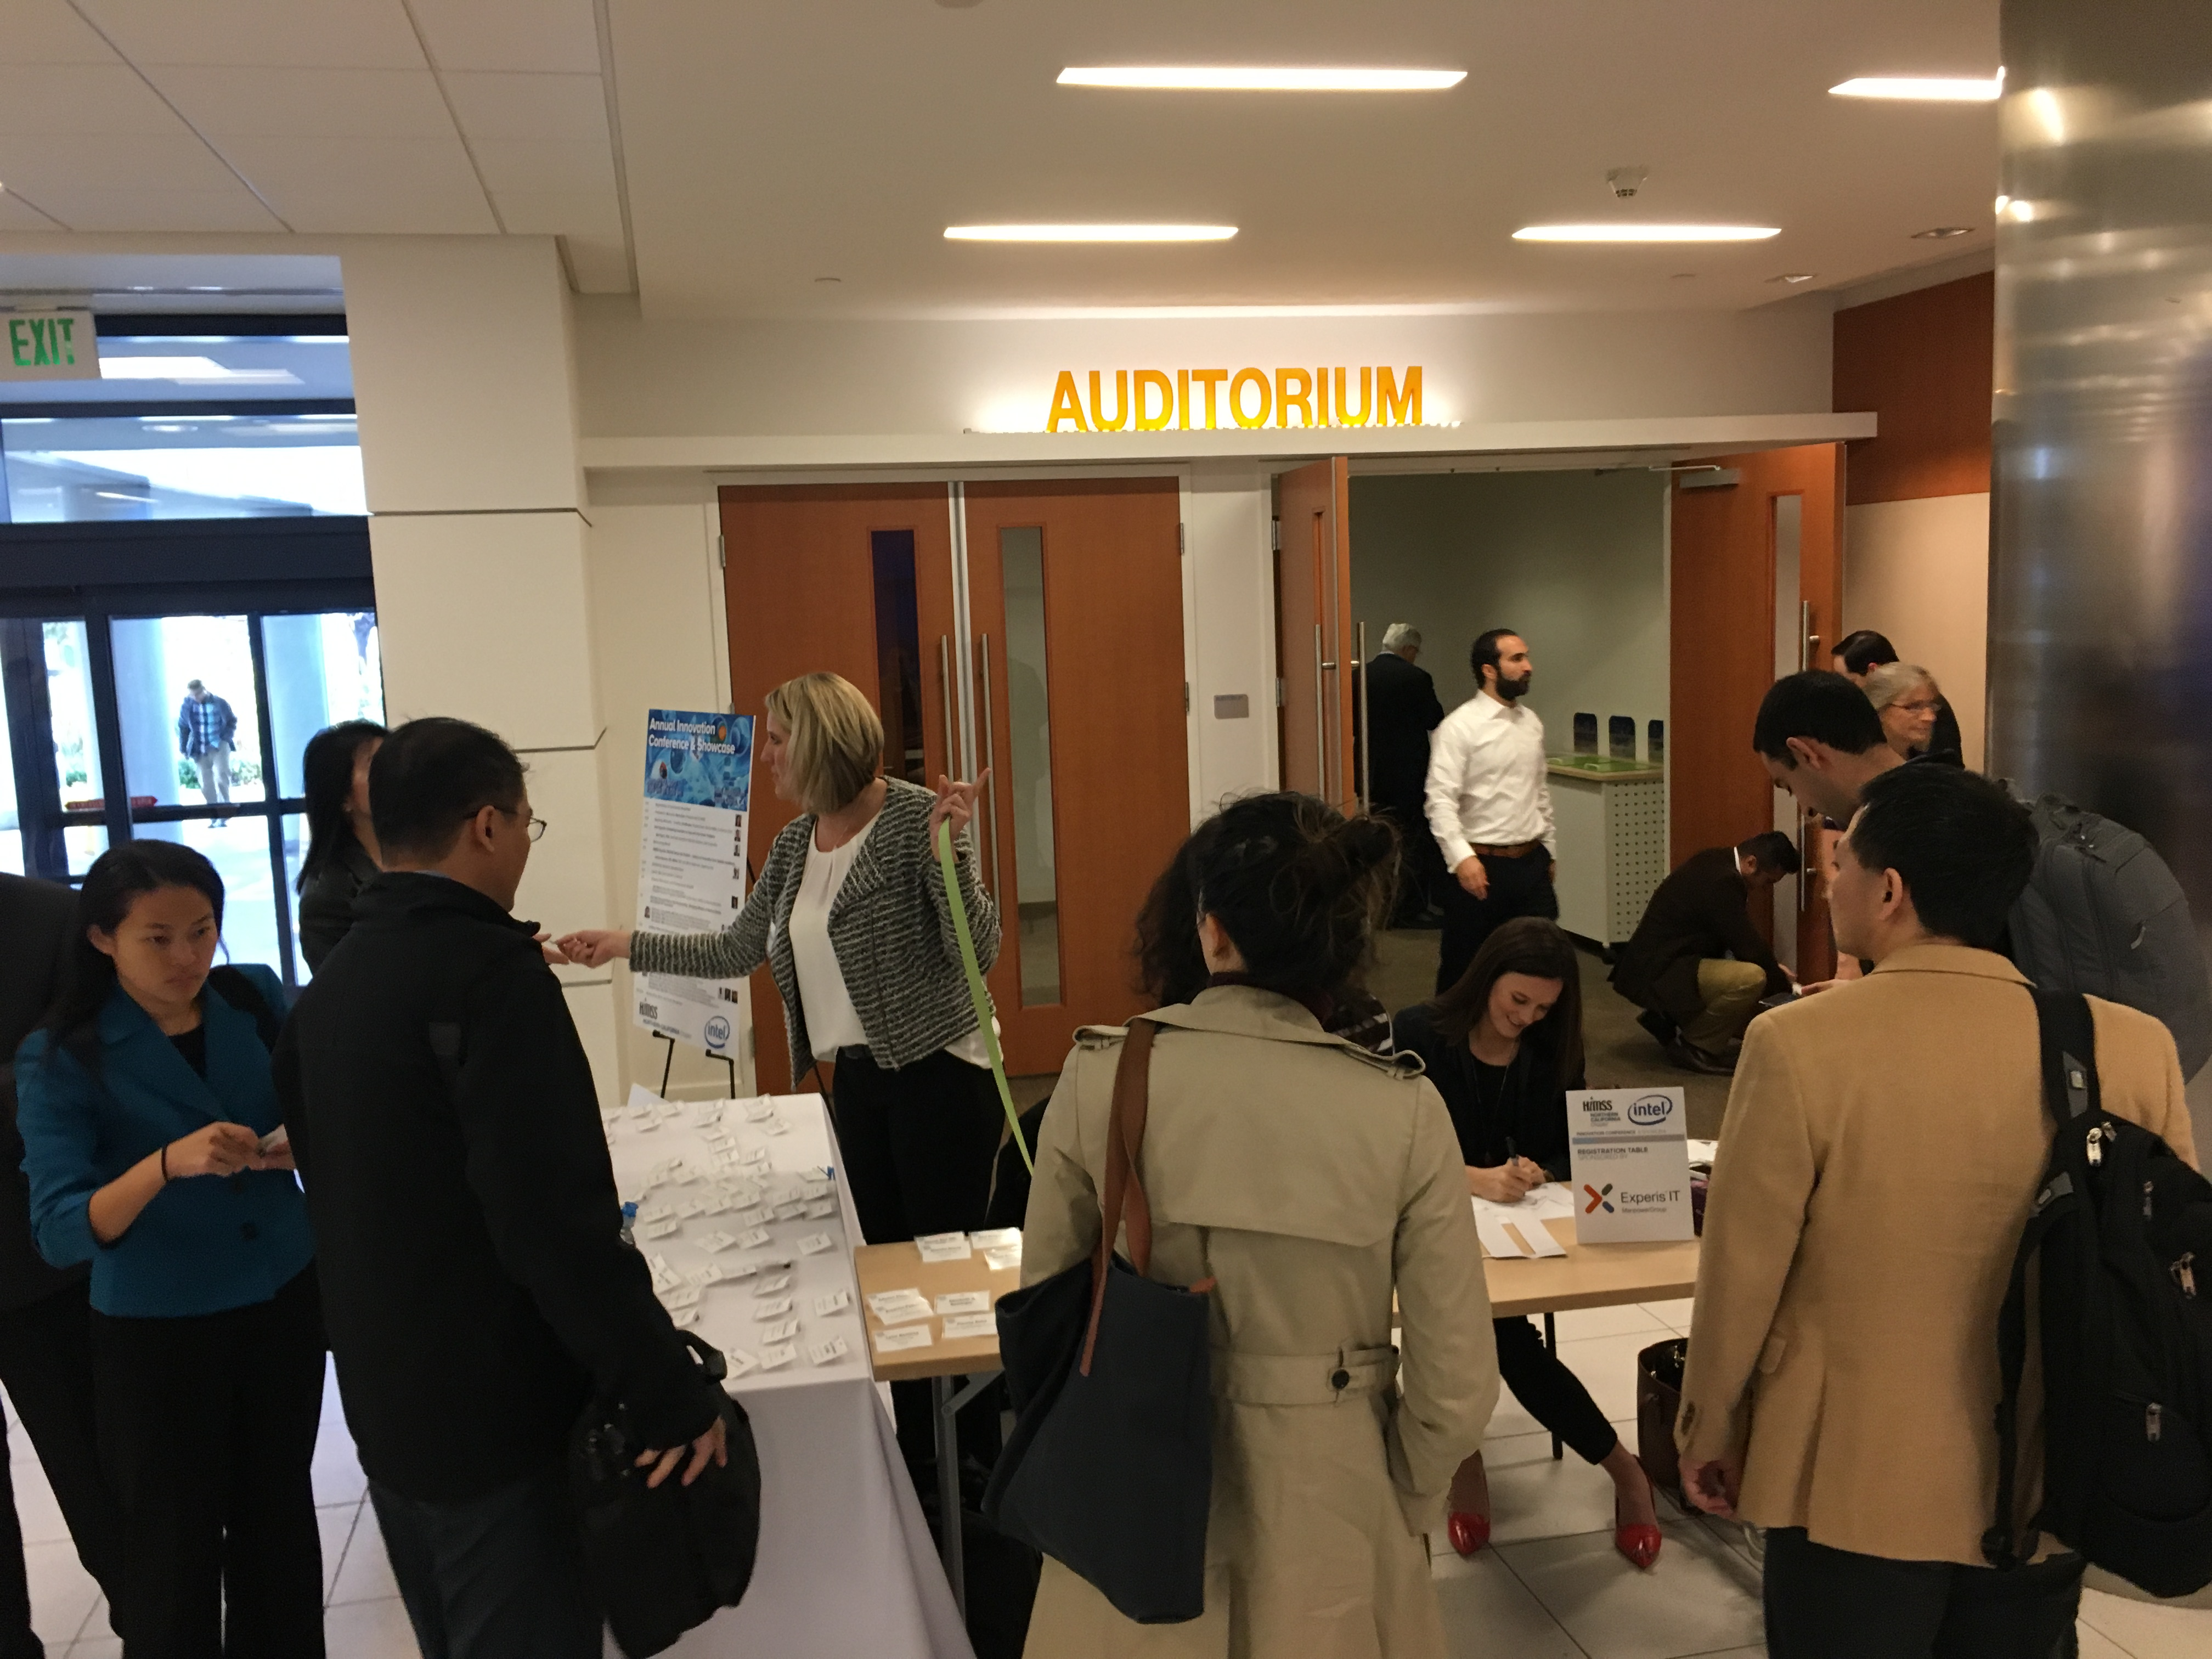 Norcal HIMSS Innovation Showcase Conference Registration - Paubox